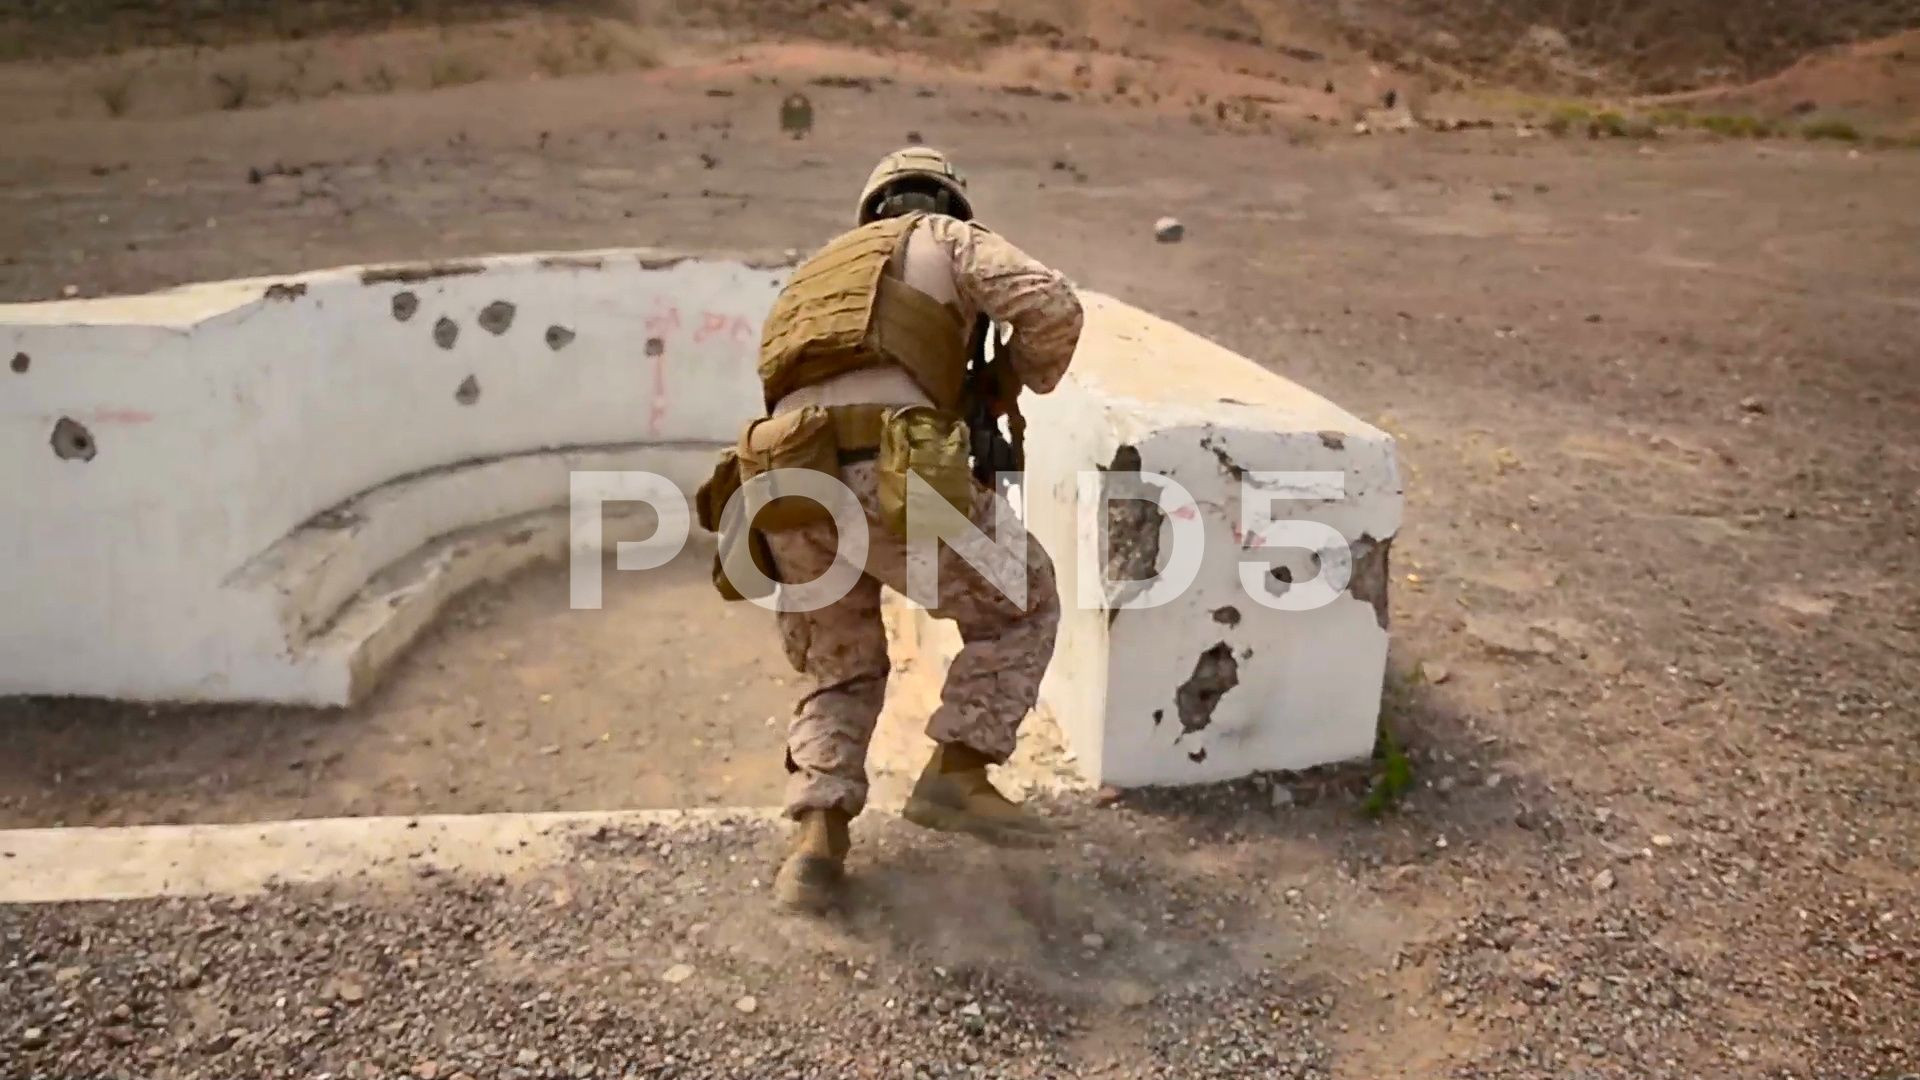 A soldier practices throwing a hand grenade during a live fire